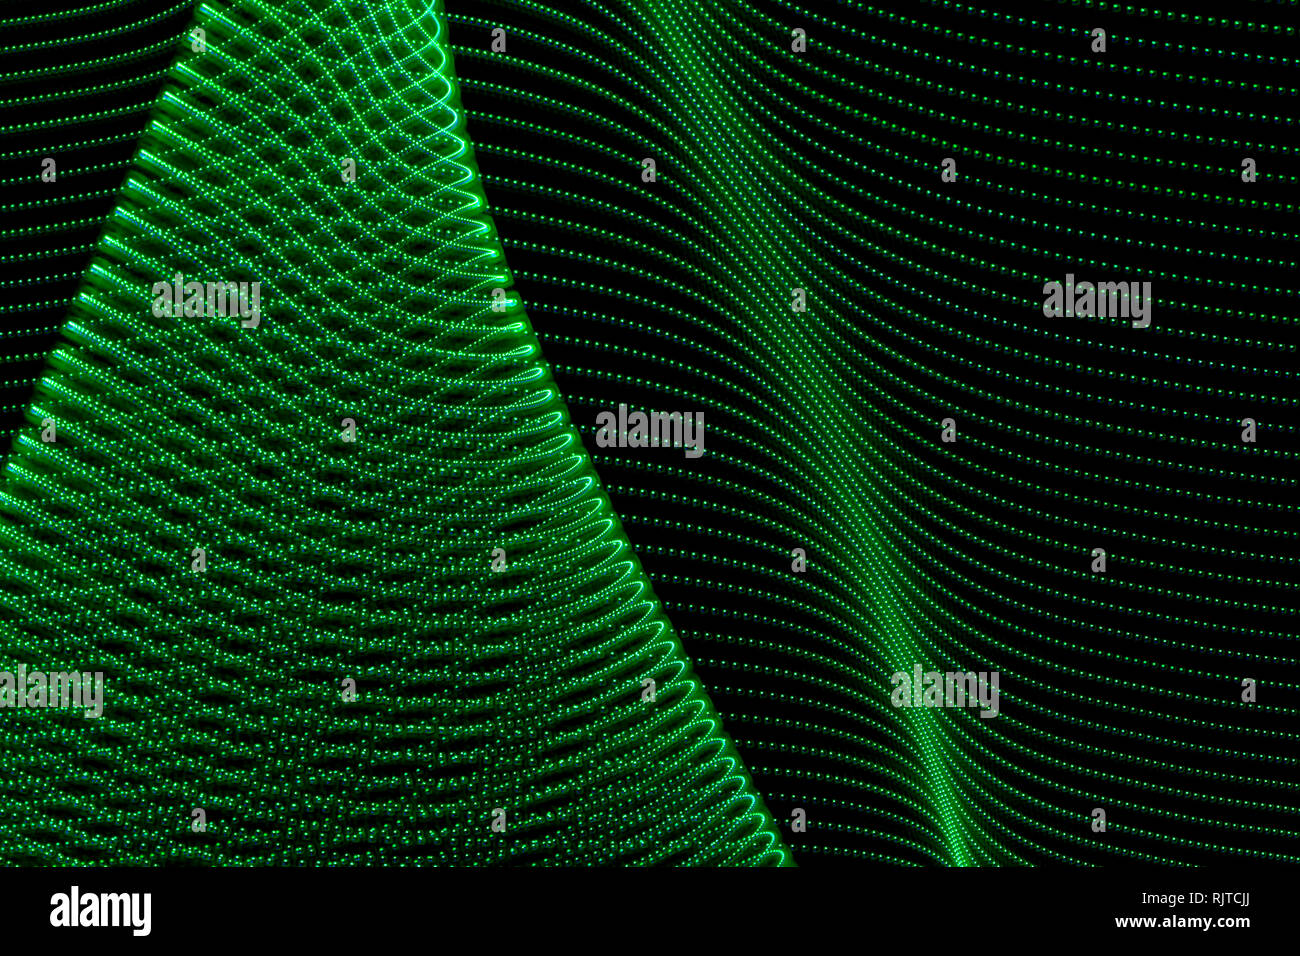 Abstract curved lines of green colors. Concept of renewable or green energy. Abstract art with lights Stock Photo